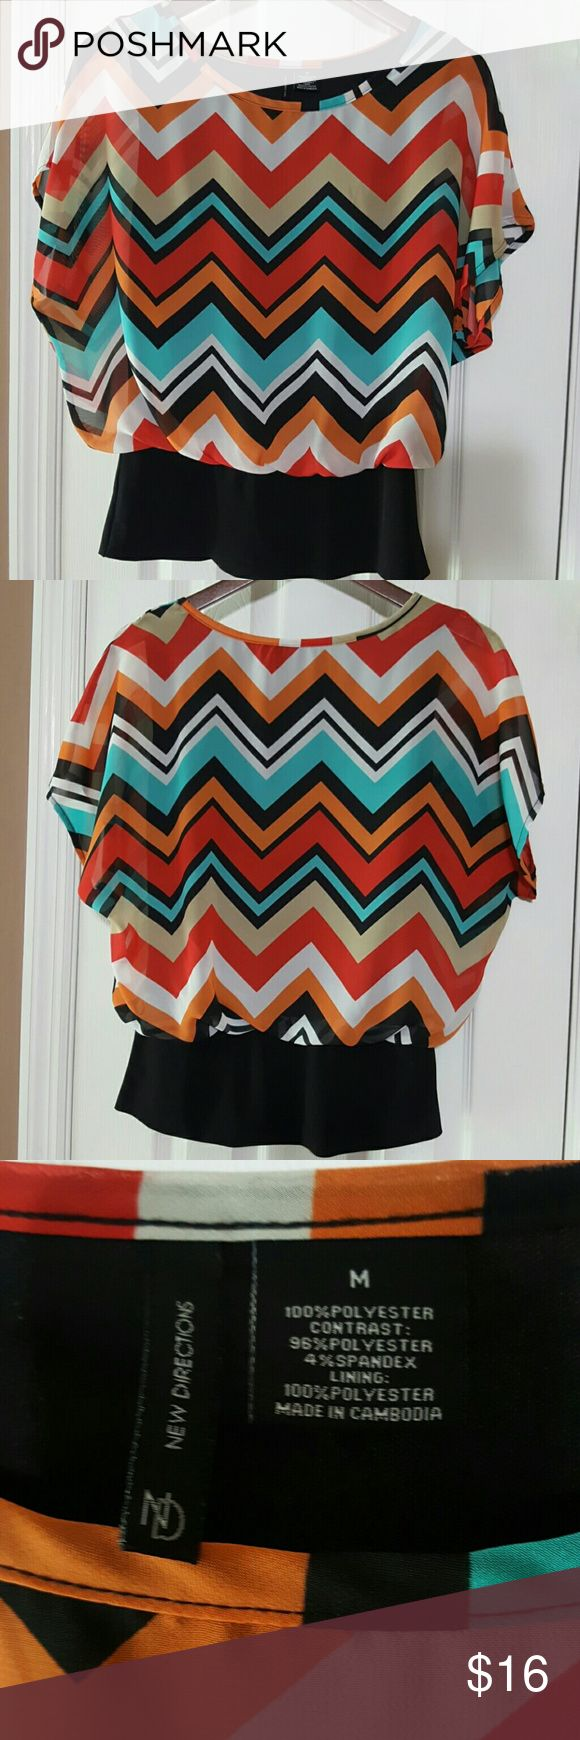 🌻SALE🌻 Directions Chevron Blouse 🌻WEEKEND SALE🌻 This multi color chevron blouse is in excellent condition. It has an attached torso lining and fitted stretchy band at waist. Very comfy and  extremely versatile can be dressed up or down. new directions Tops Blouses